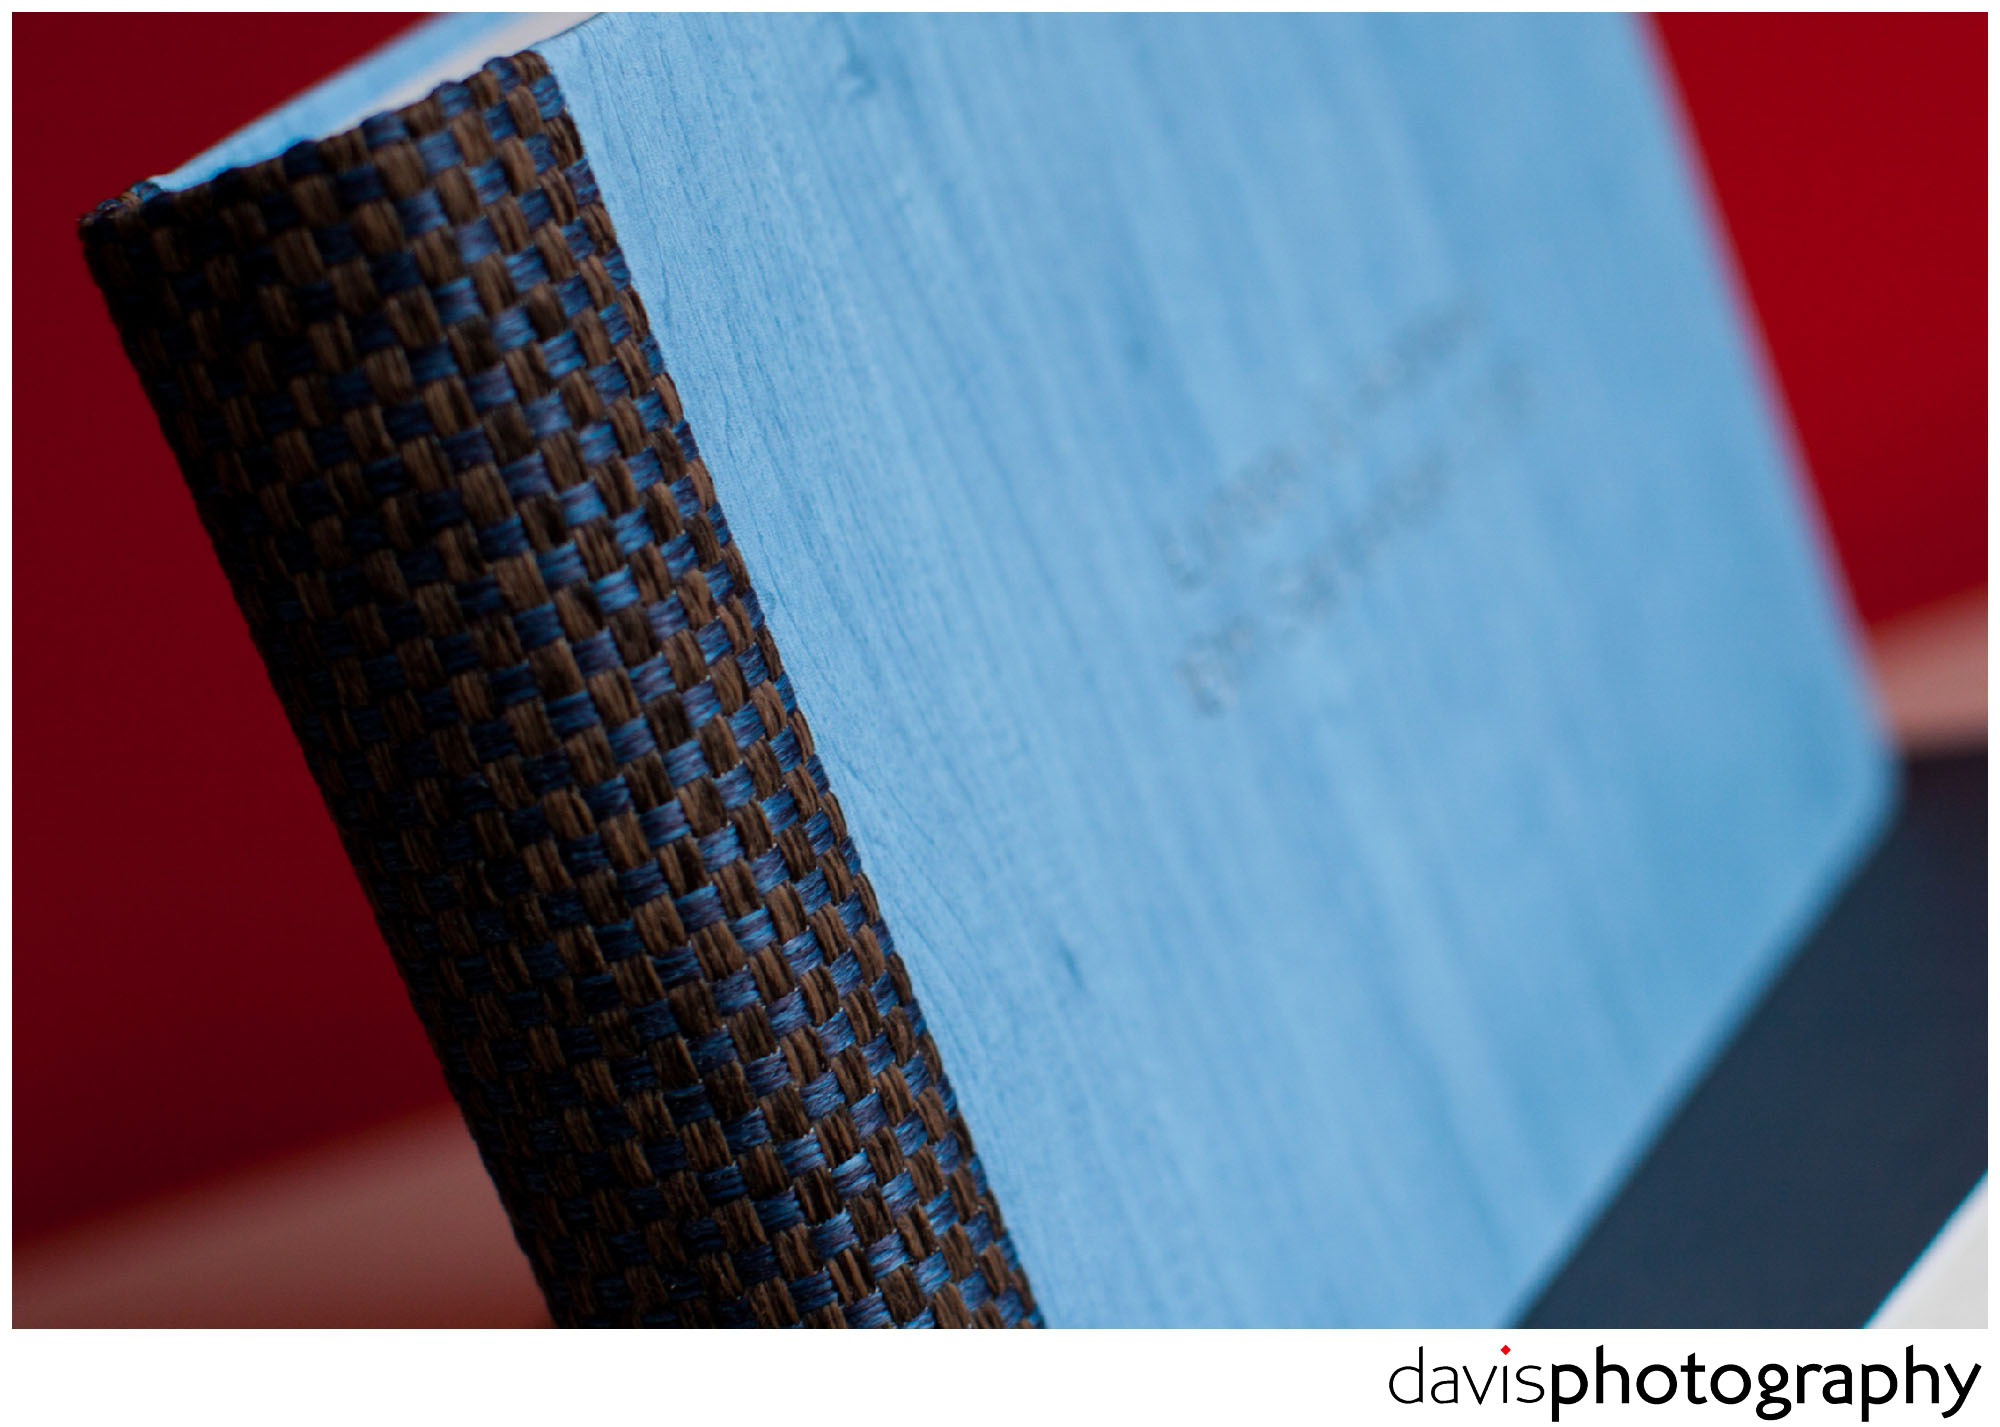 Powder blue maple covered matted album with brown and matching blue woven spine detail gives textures that you want to touch.